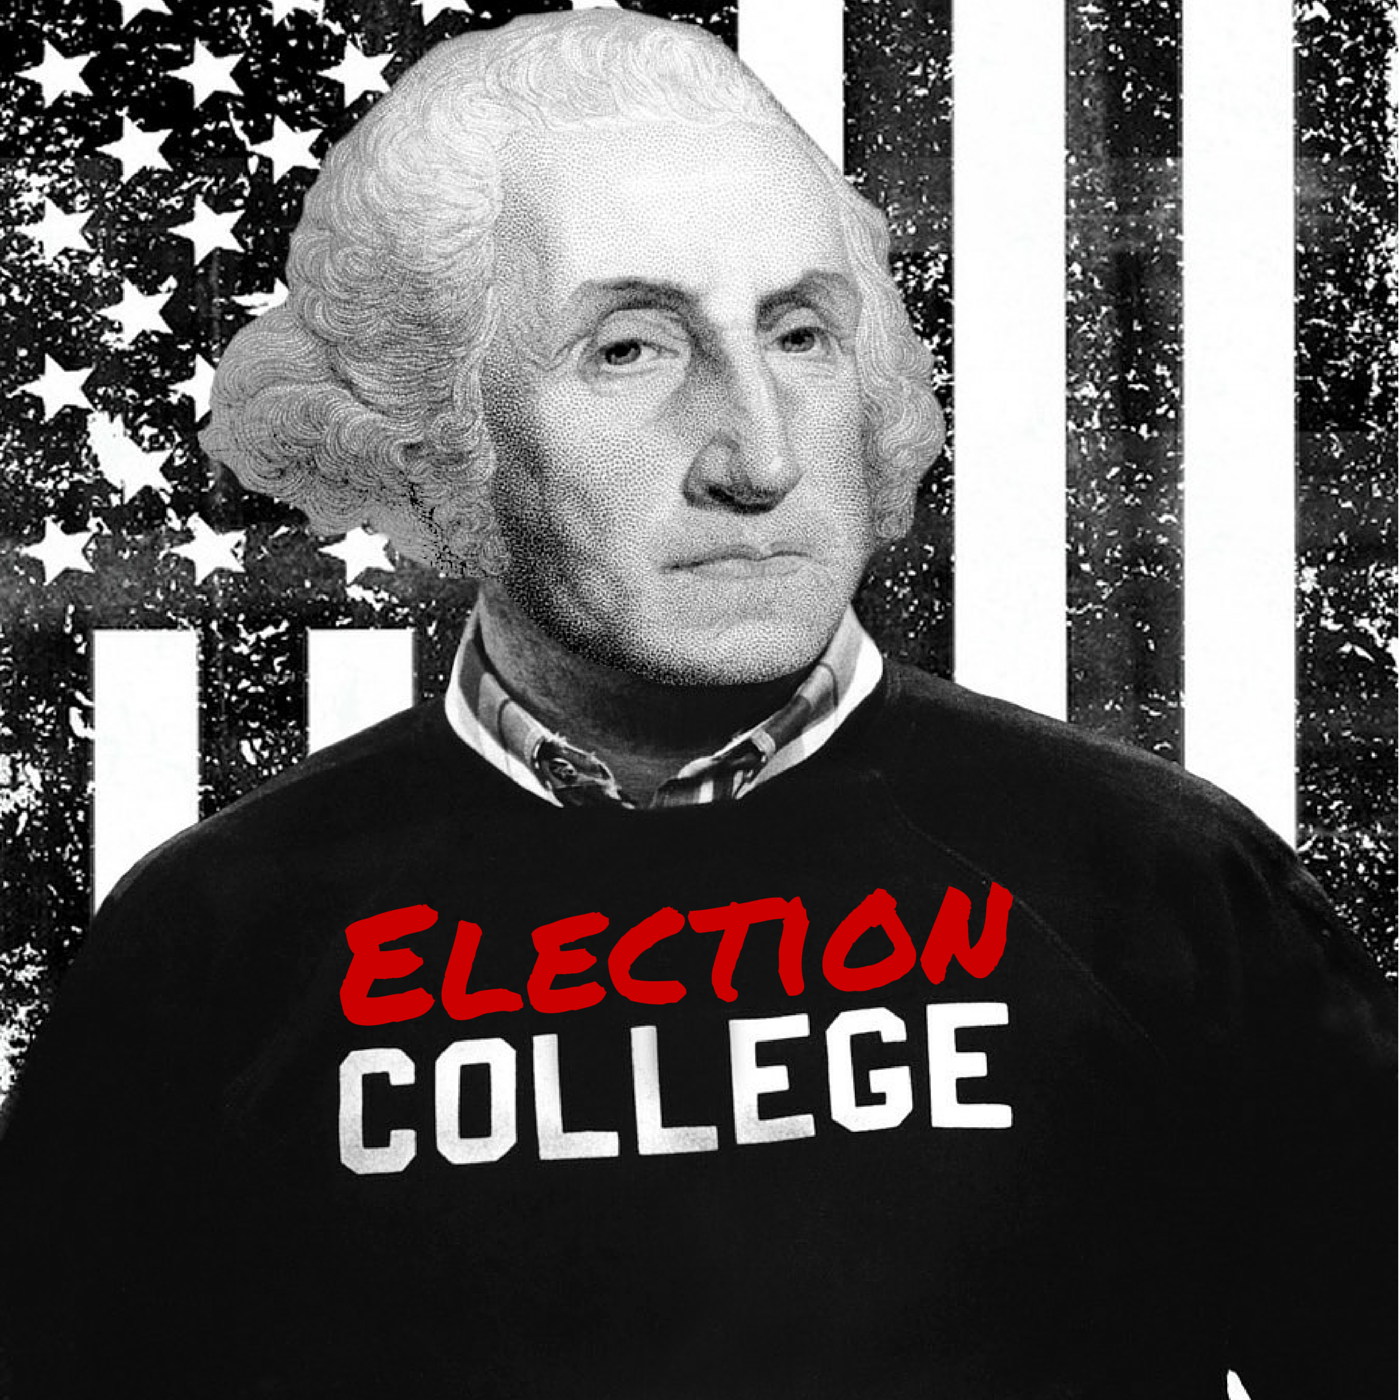 John C. Breckinridge - Part 2 | Episode #209 | Election College: United States Presidential Election History